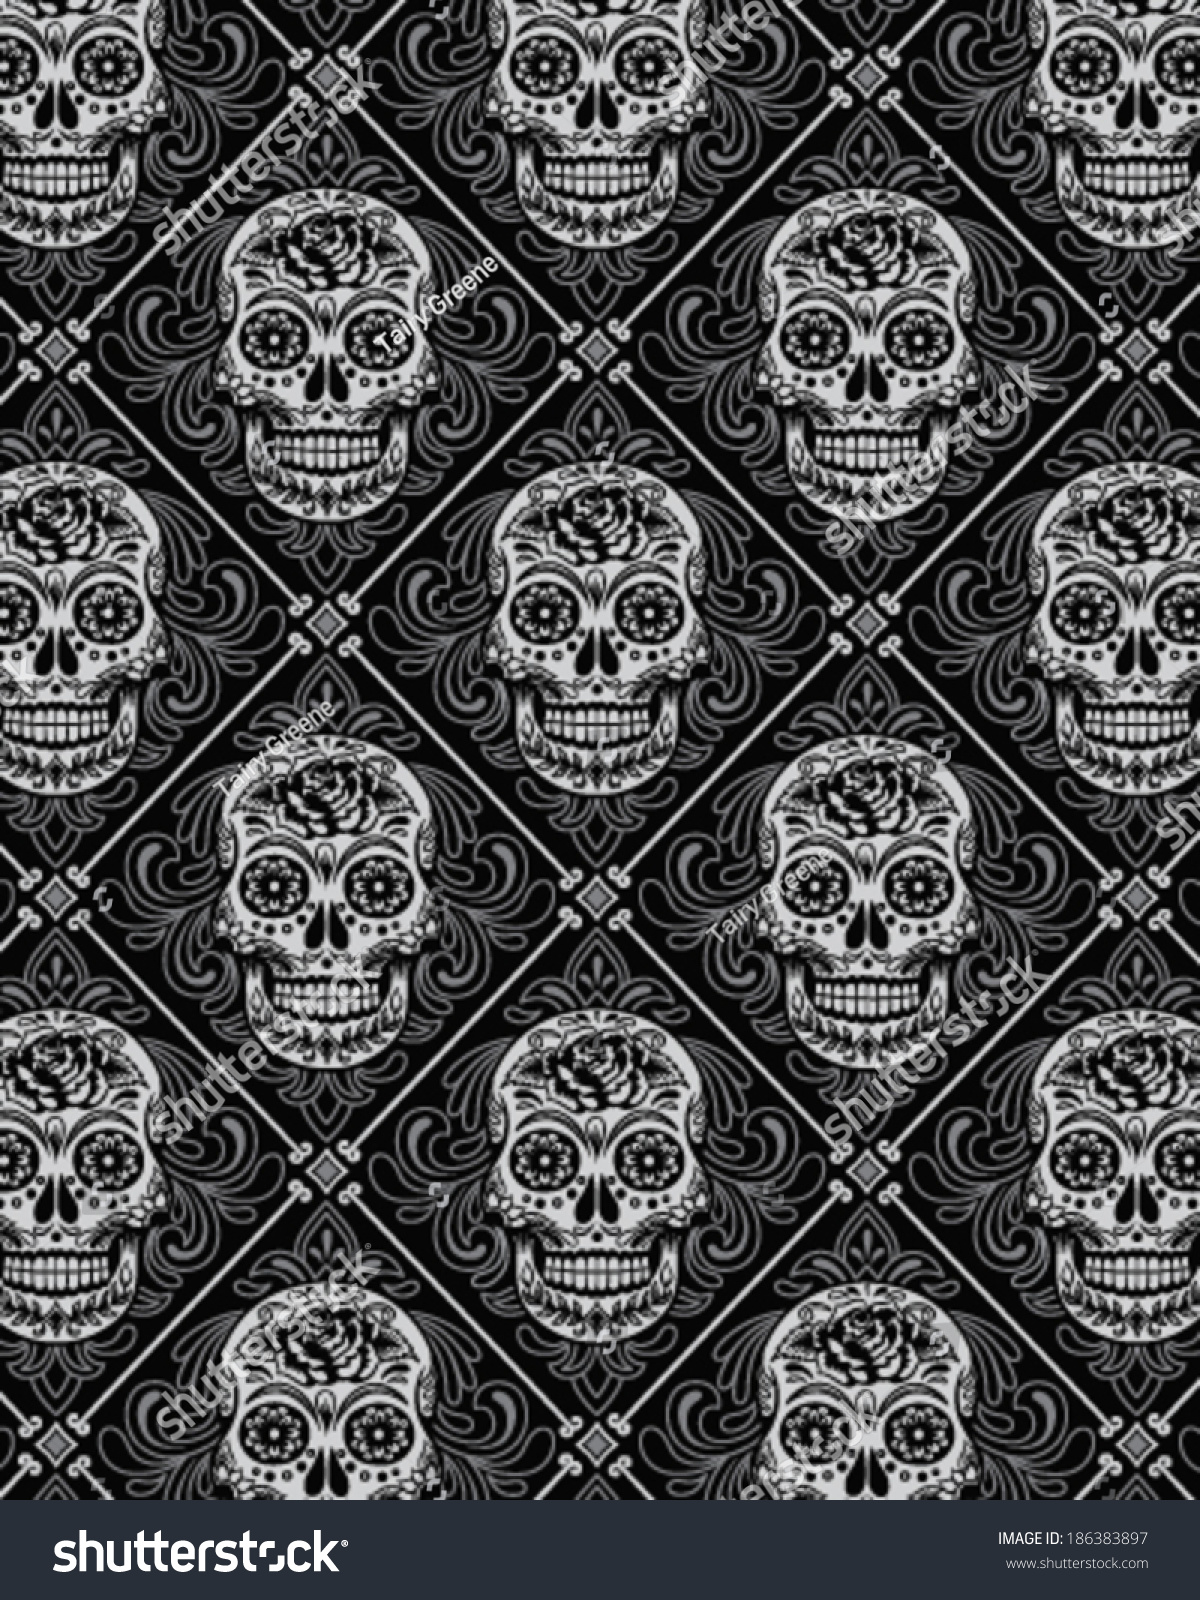 Free Download Day Of The Dead Wallpapers Desktop 1200x1600 4usky